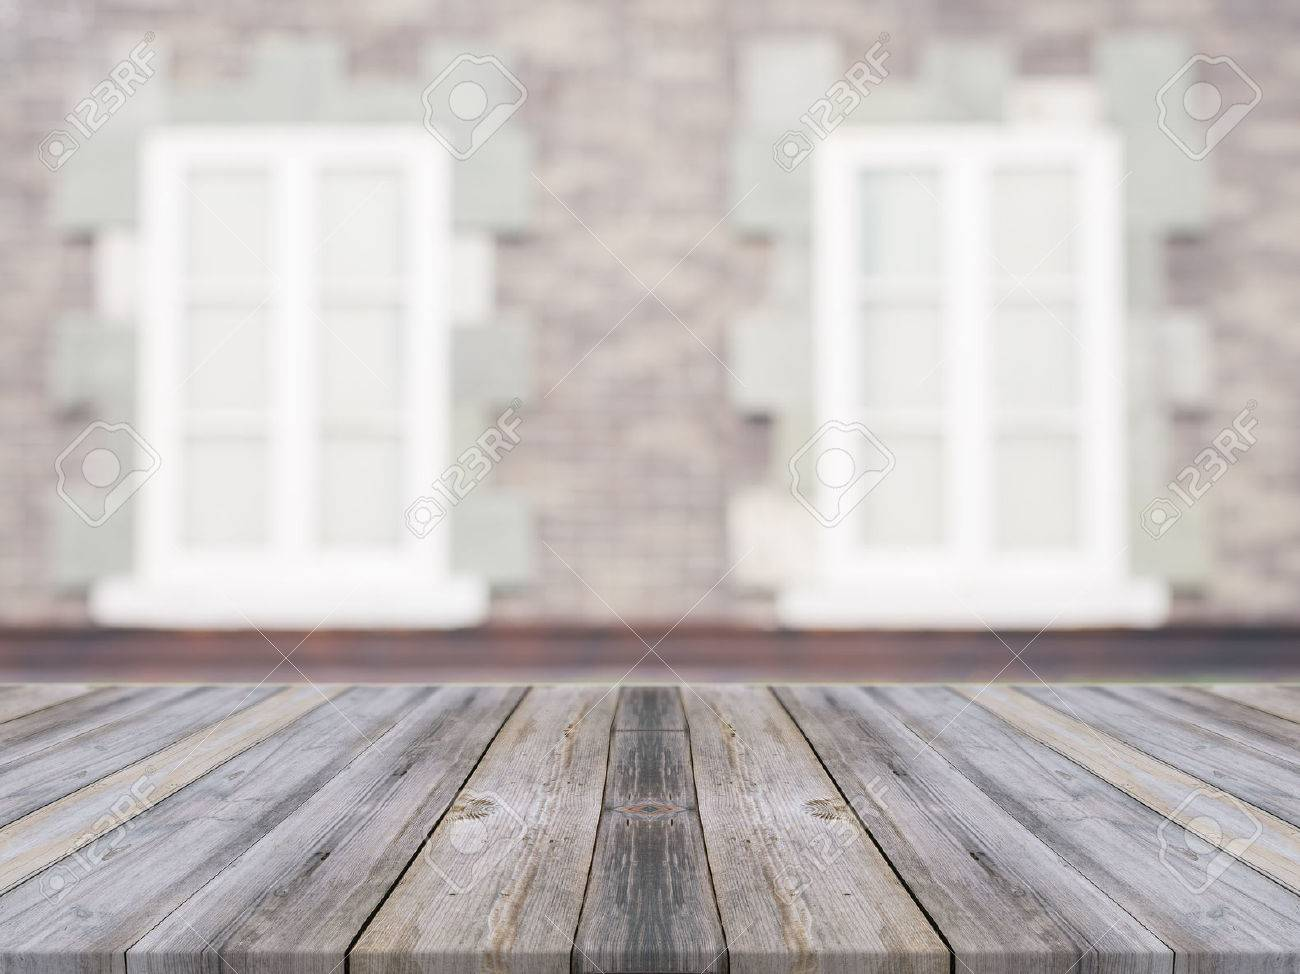 Wooden board empty table in front of blurred background wooden board empty table in front of blurred background perspective grey wood over blur ceramic dailygadgetfo Image collections